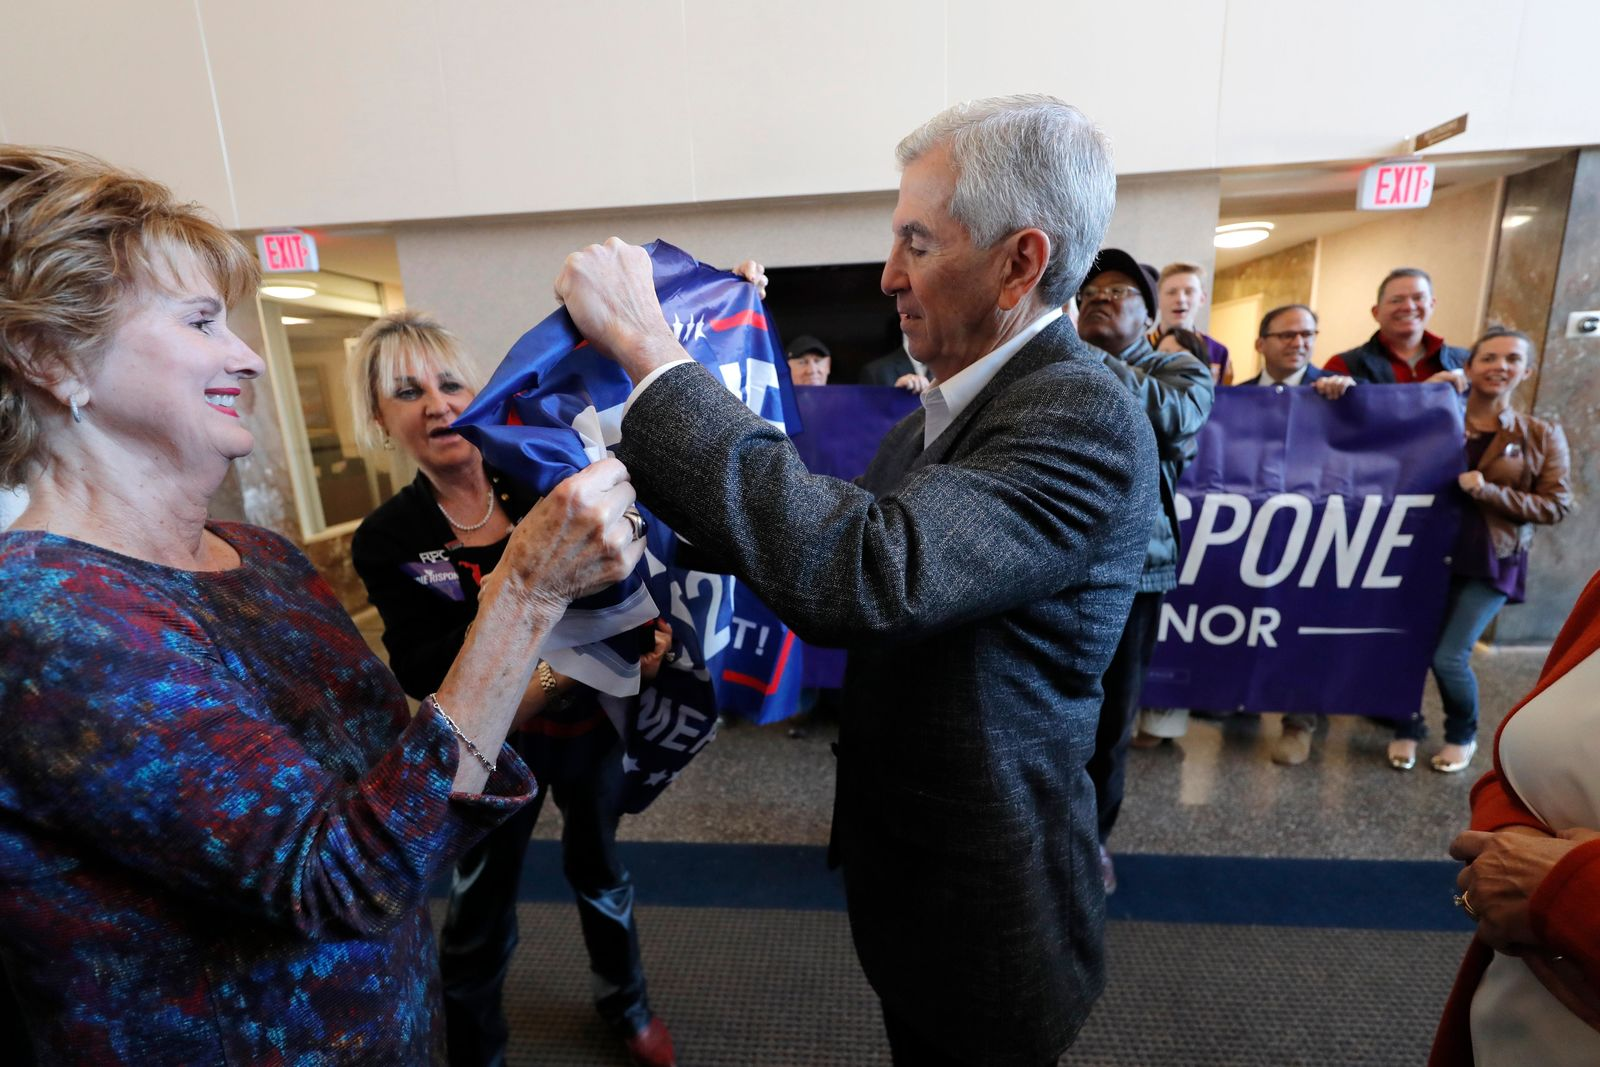 Louisiana Republican gubernatorial candidate Eddie Rispone signs a campaign banner as he greets supporters at a campaign stop in Shreveport, La., Friday, Nov. 15, 2019. (AP Photo/Gerald Herbert)